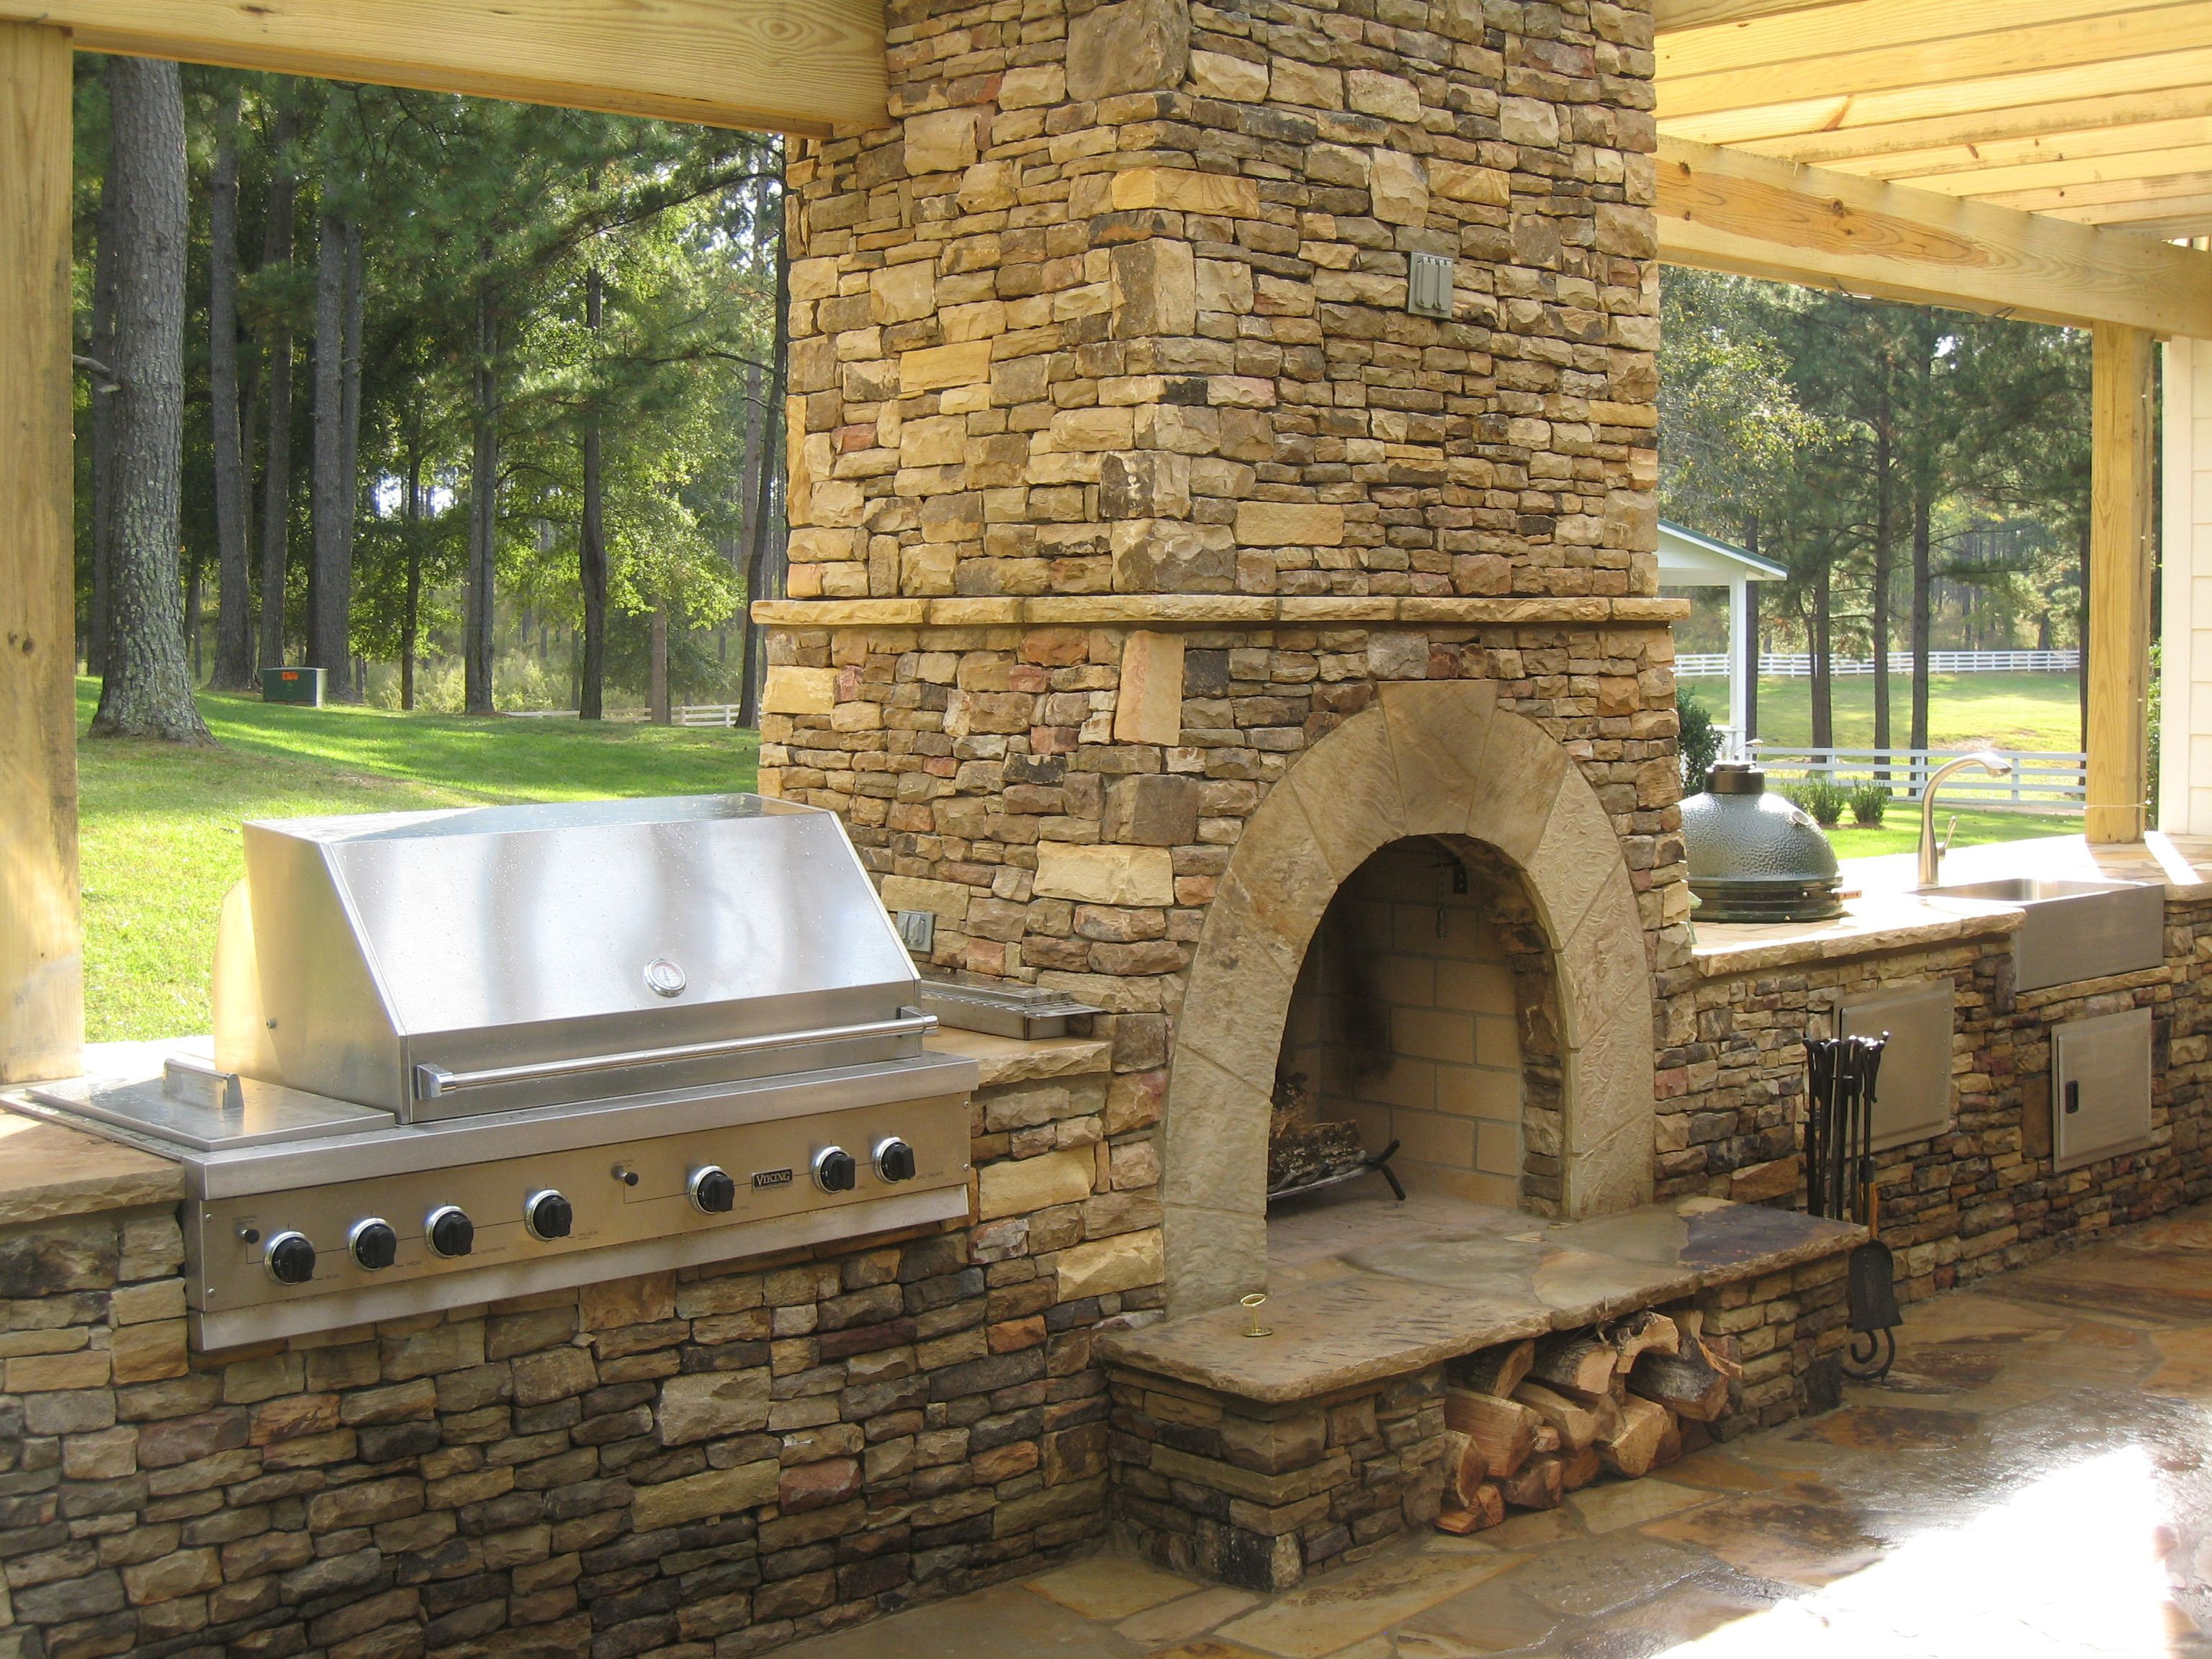 Outdoor Fireplace Design Amazing Outdoor Fireplace Designs Part 1